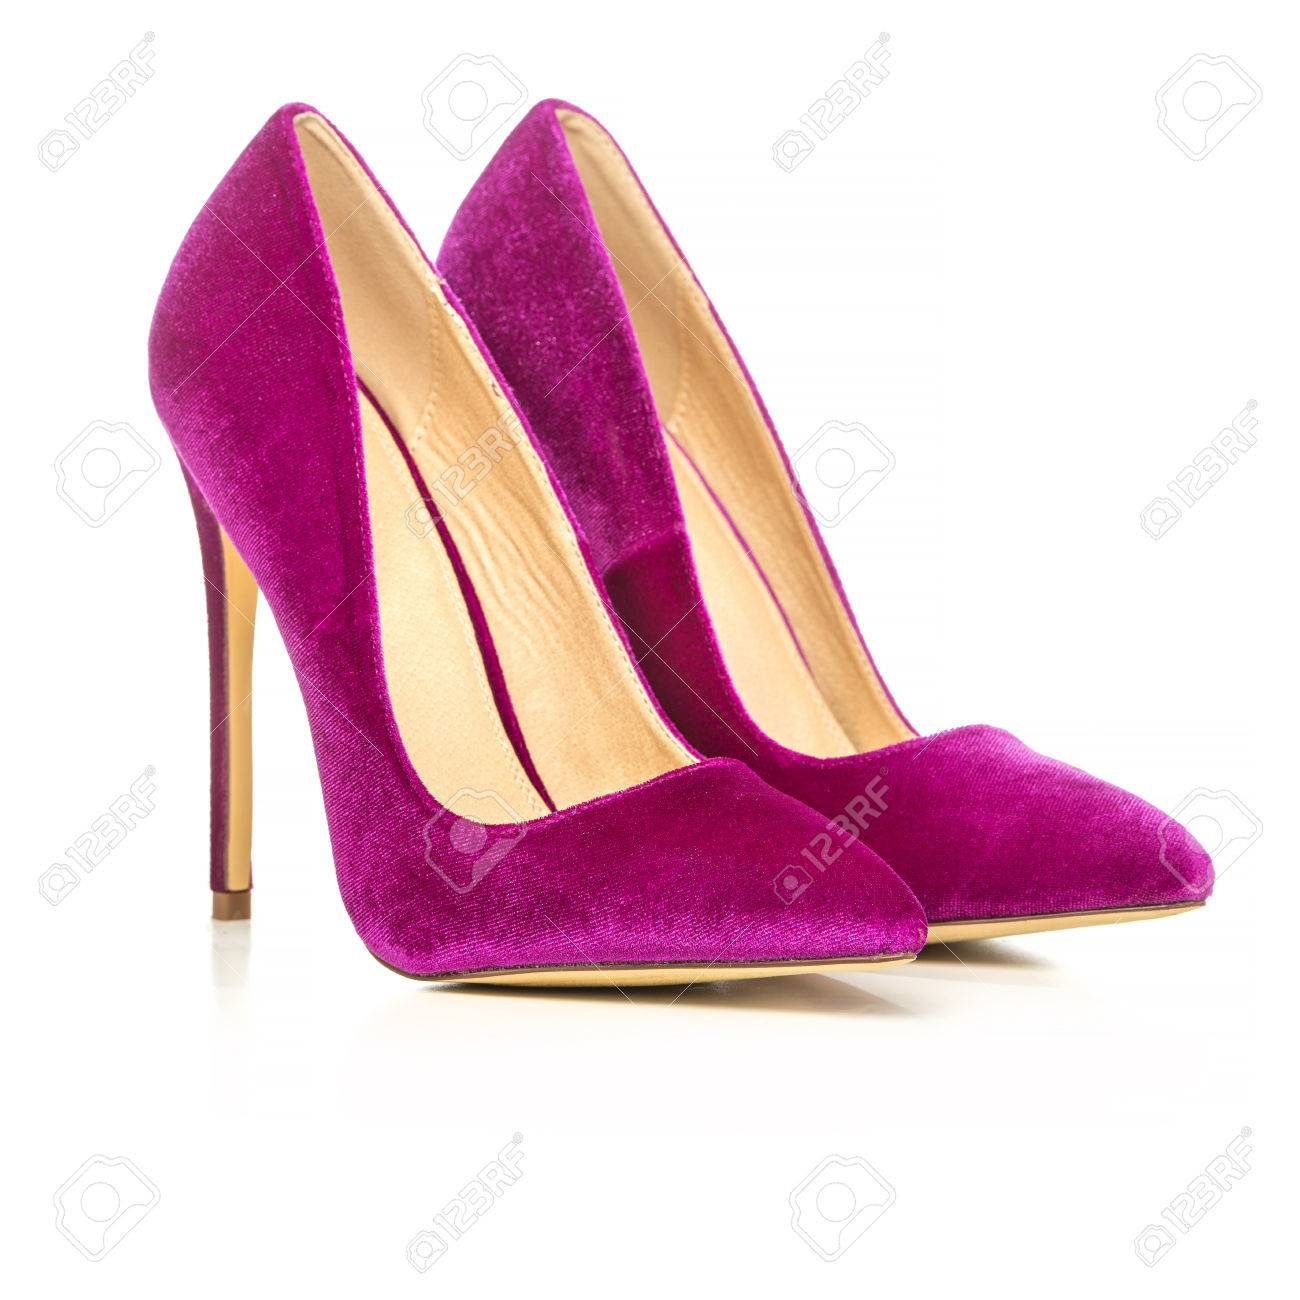 b31ebea09992 Classic stiletto high heels shoes in pink suede velvet. PLEASE NOTE  this is